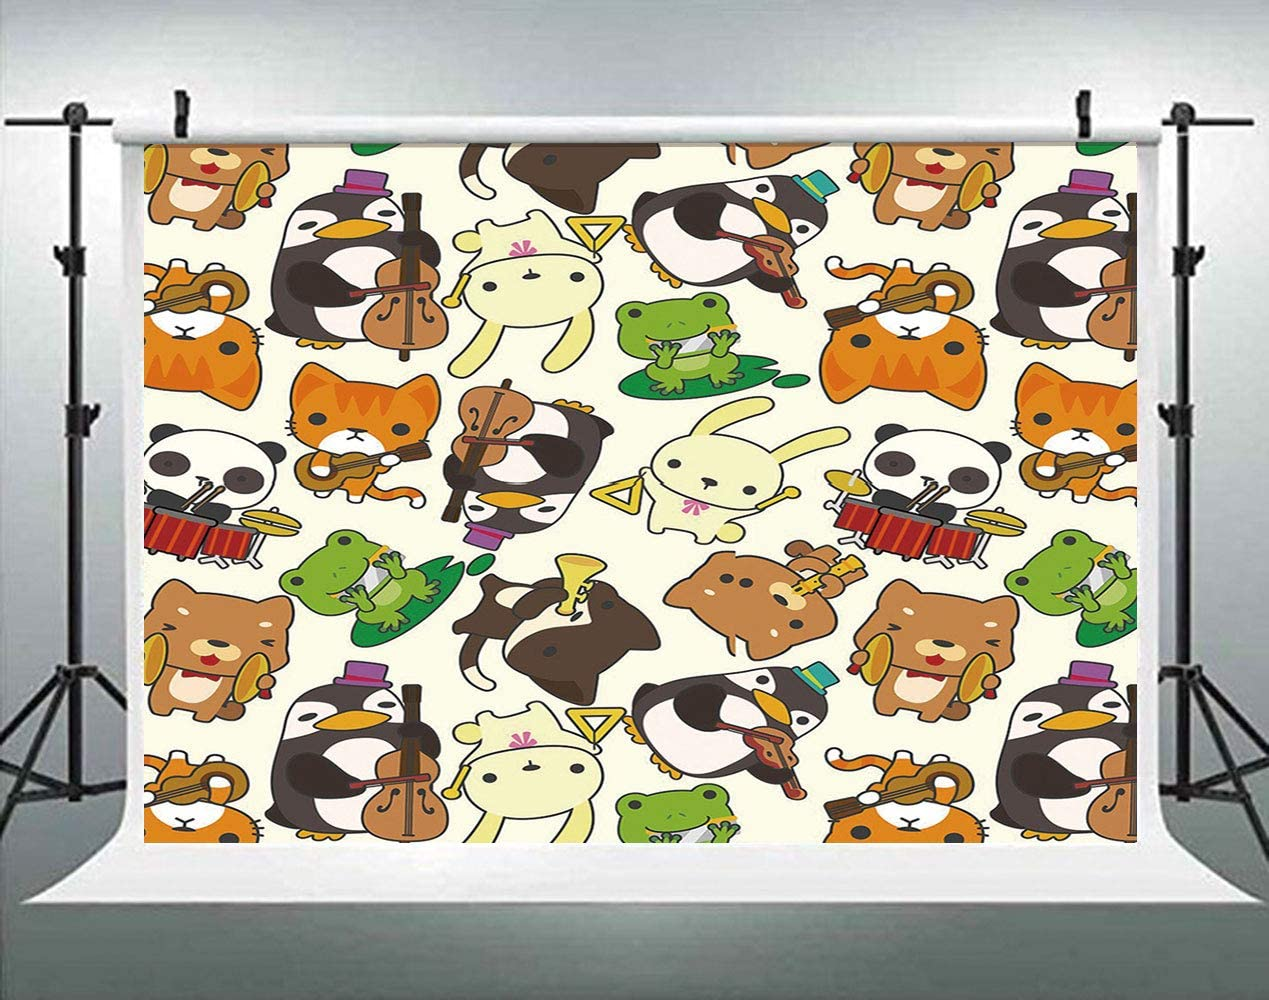 Cartoon Designed Baby Duck Bird and Fox Against Sun Beams Backdrop for Selfie Birthday Party Pictures Photo Dance Decor Wedding Studio Background AM024467 ALUONI 5x3ft Nursery